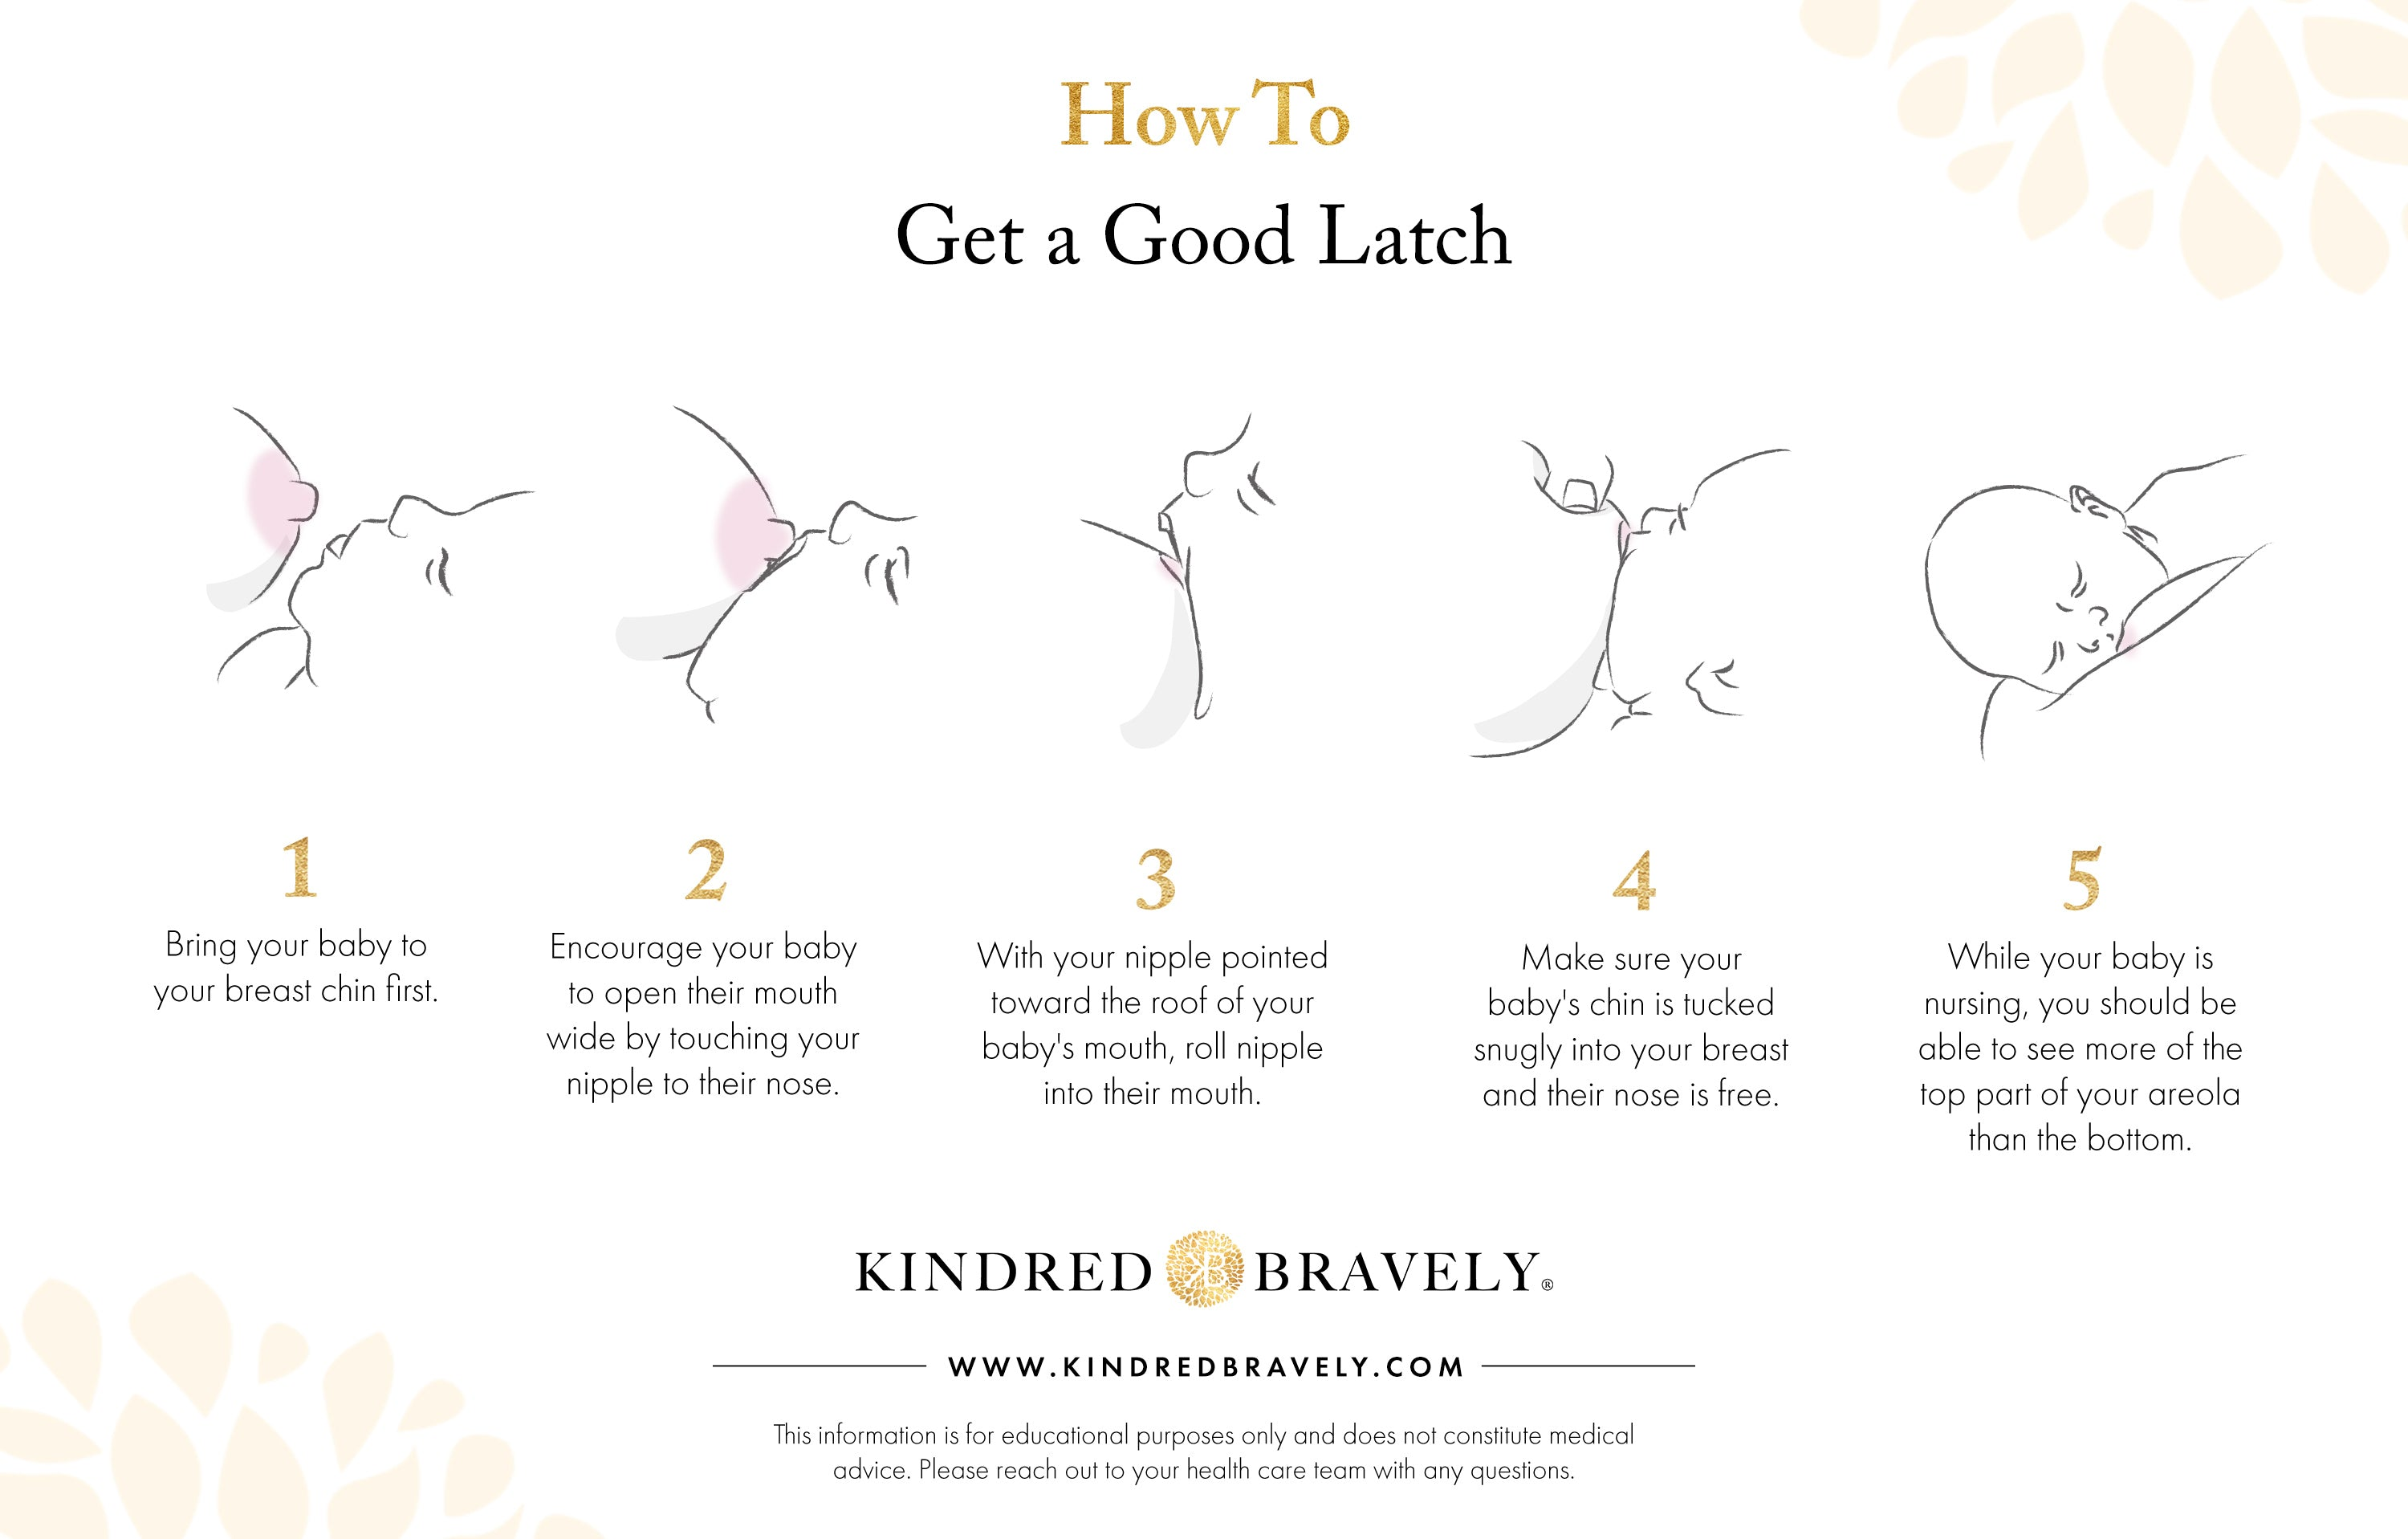 10 Tips For Breastfeeding A Newborn Baby Kindred Bravely